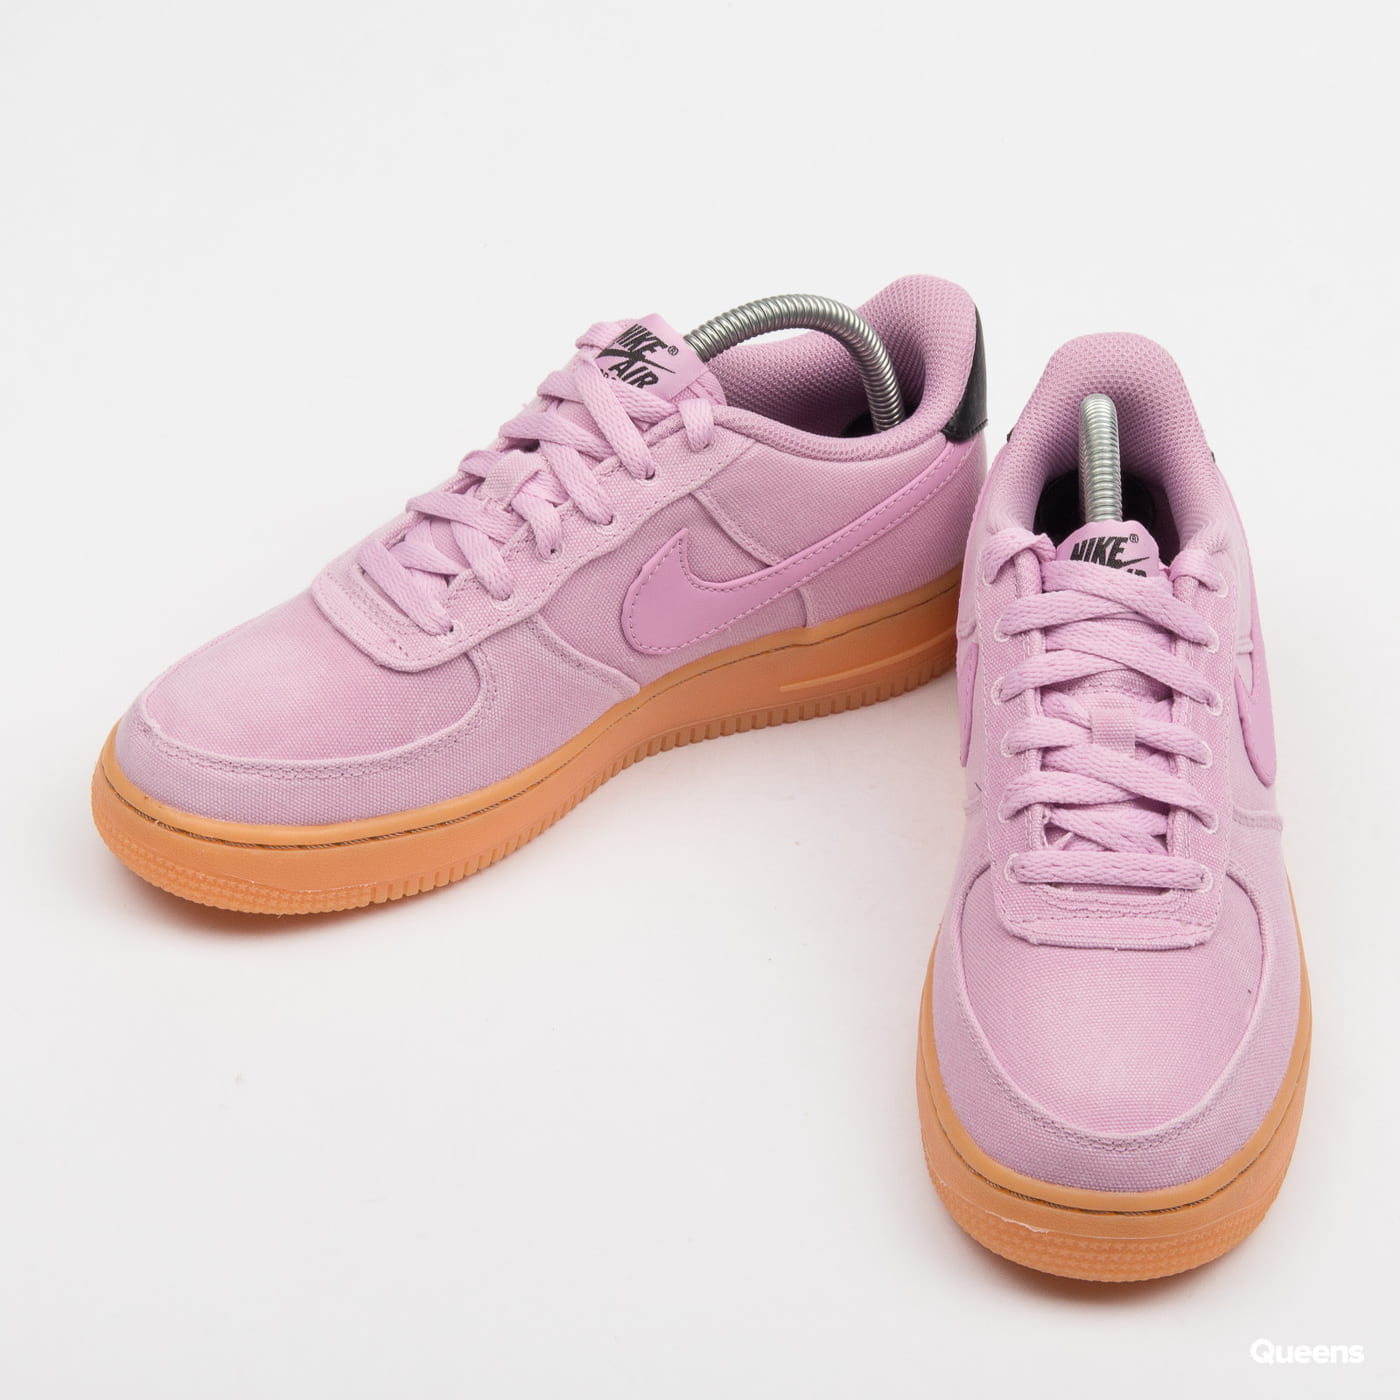 9c2794577fb4a Zoom in Zoom in Zoom in Zoom in Zoom in. Nike Air Force 1 LV8 Style (GS) lt arctic  pink ...